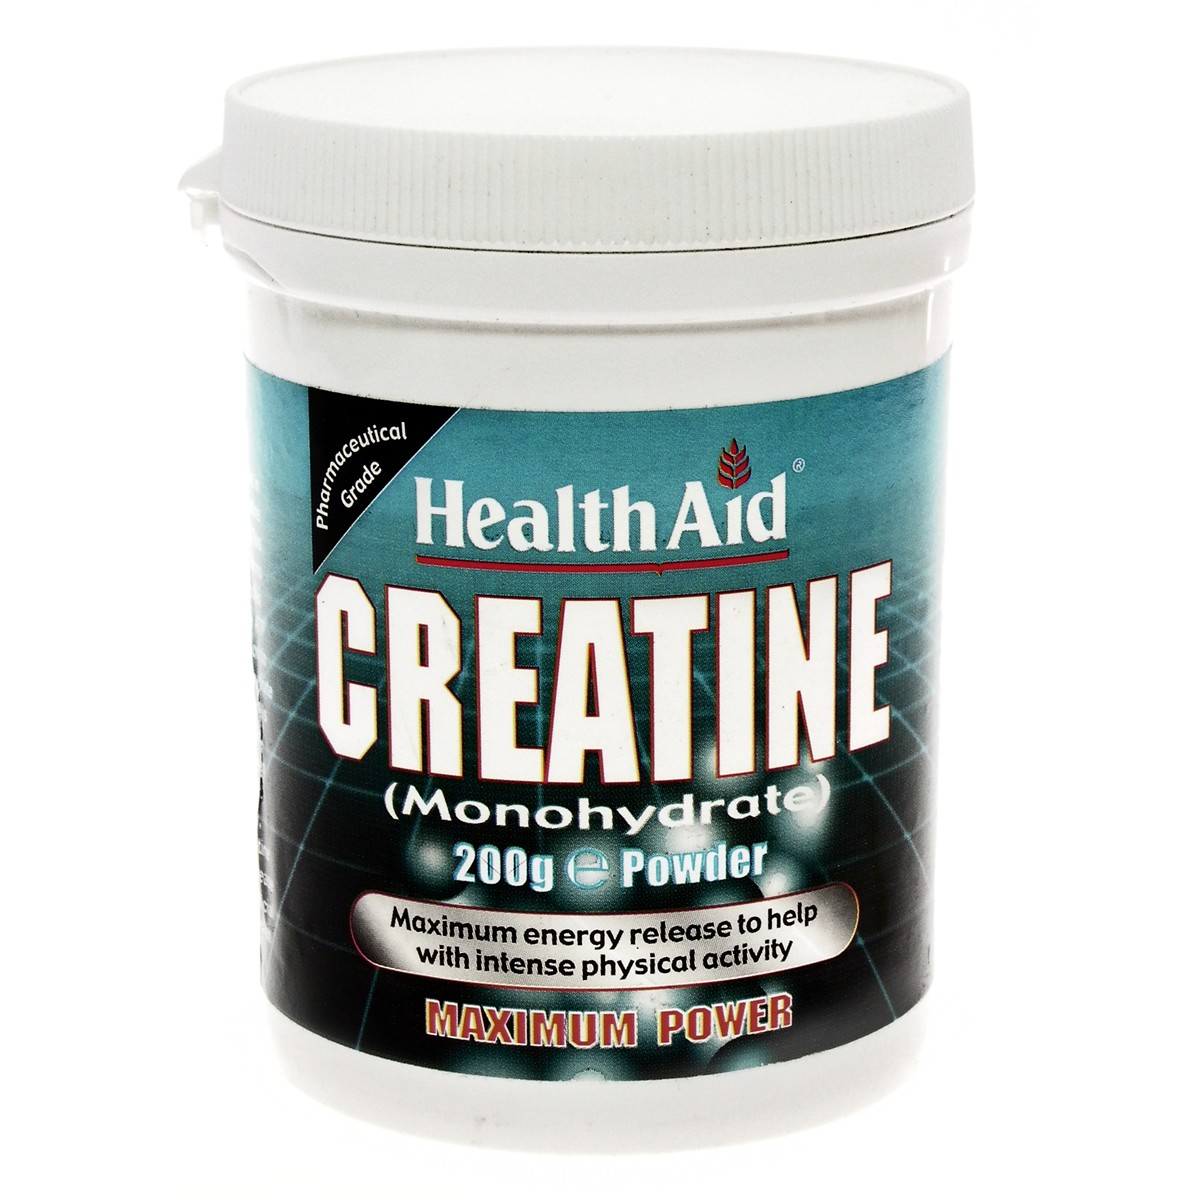 HealthAid Creatine Monohydrate Powder